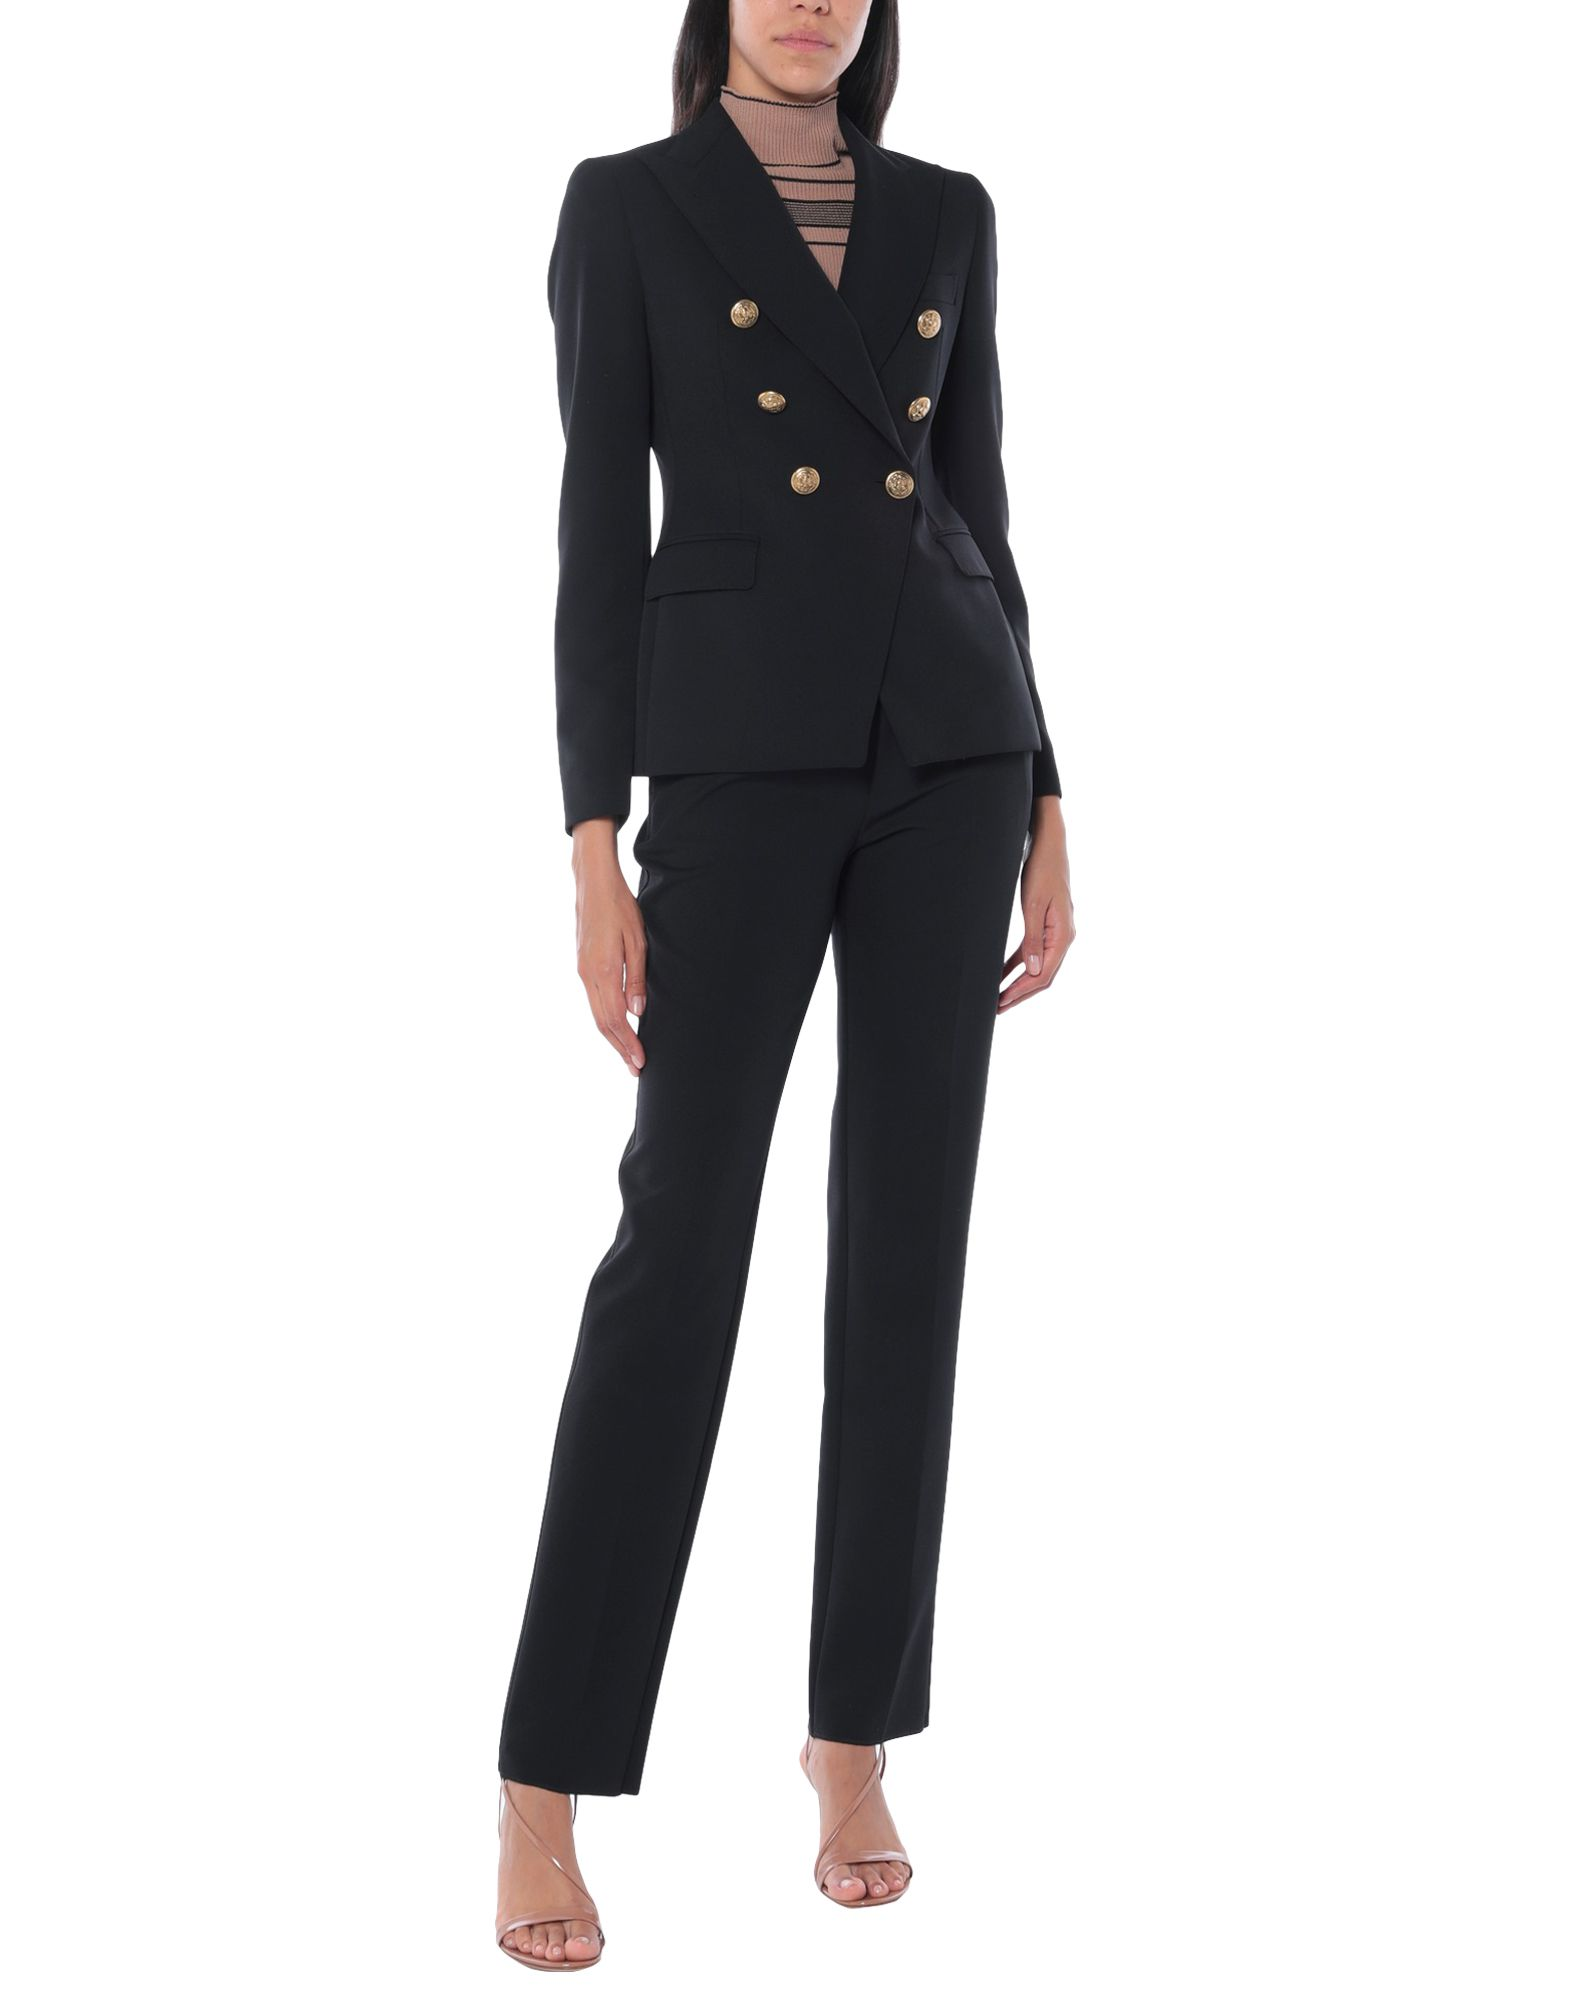 TAGLIATORE Women\\\'s suits. crepe, no appliqués, basic solid color, lapel collar, long sleeves, double-breasted, multipockets, button closing, single chest pocket, internal pockets, fully lined, back split, stretch, small sized. 88% Polyester, 12% Elastane